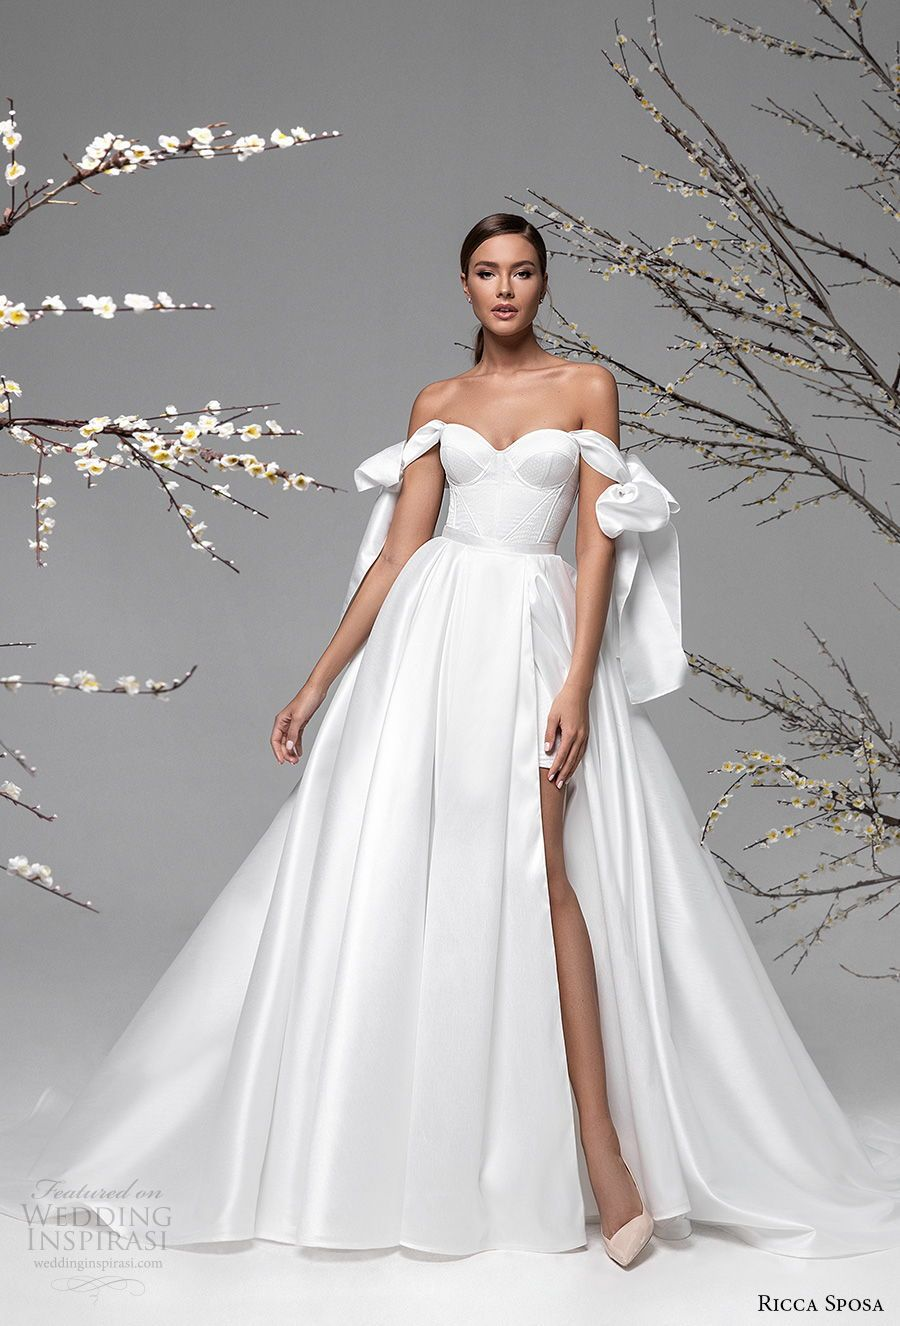 79 Beautiful Simple Wedding Gowns Off The Shoulder A Line Wedding Gown Weddingdress Wedding Simple Wedding Gowns Off Shoulder Wedding Dress Wedding Dresses [ 1572 x 777 Pixel ]